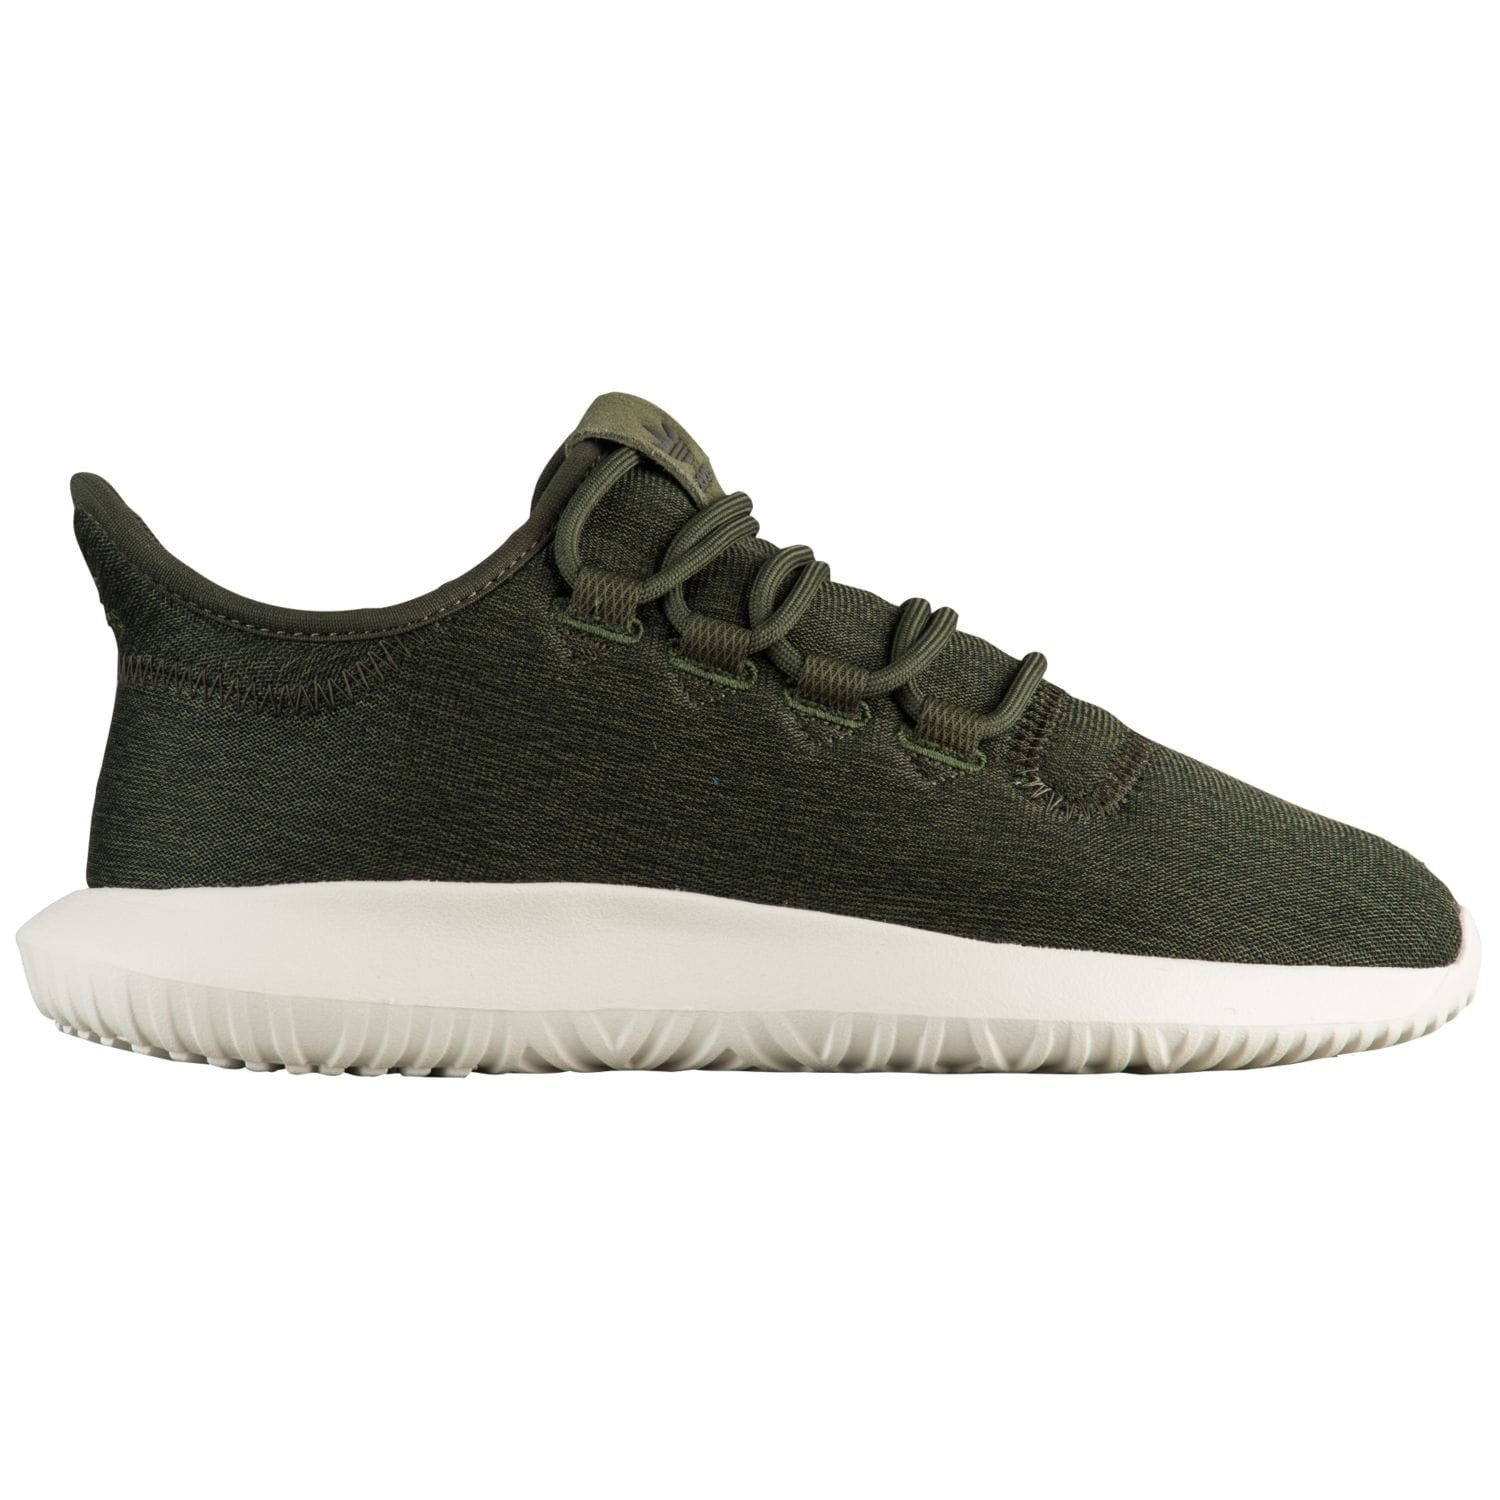 adidas Originals Tubular Shadow Skor AQ0194 - Dam